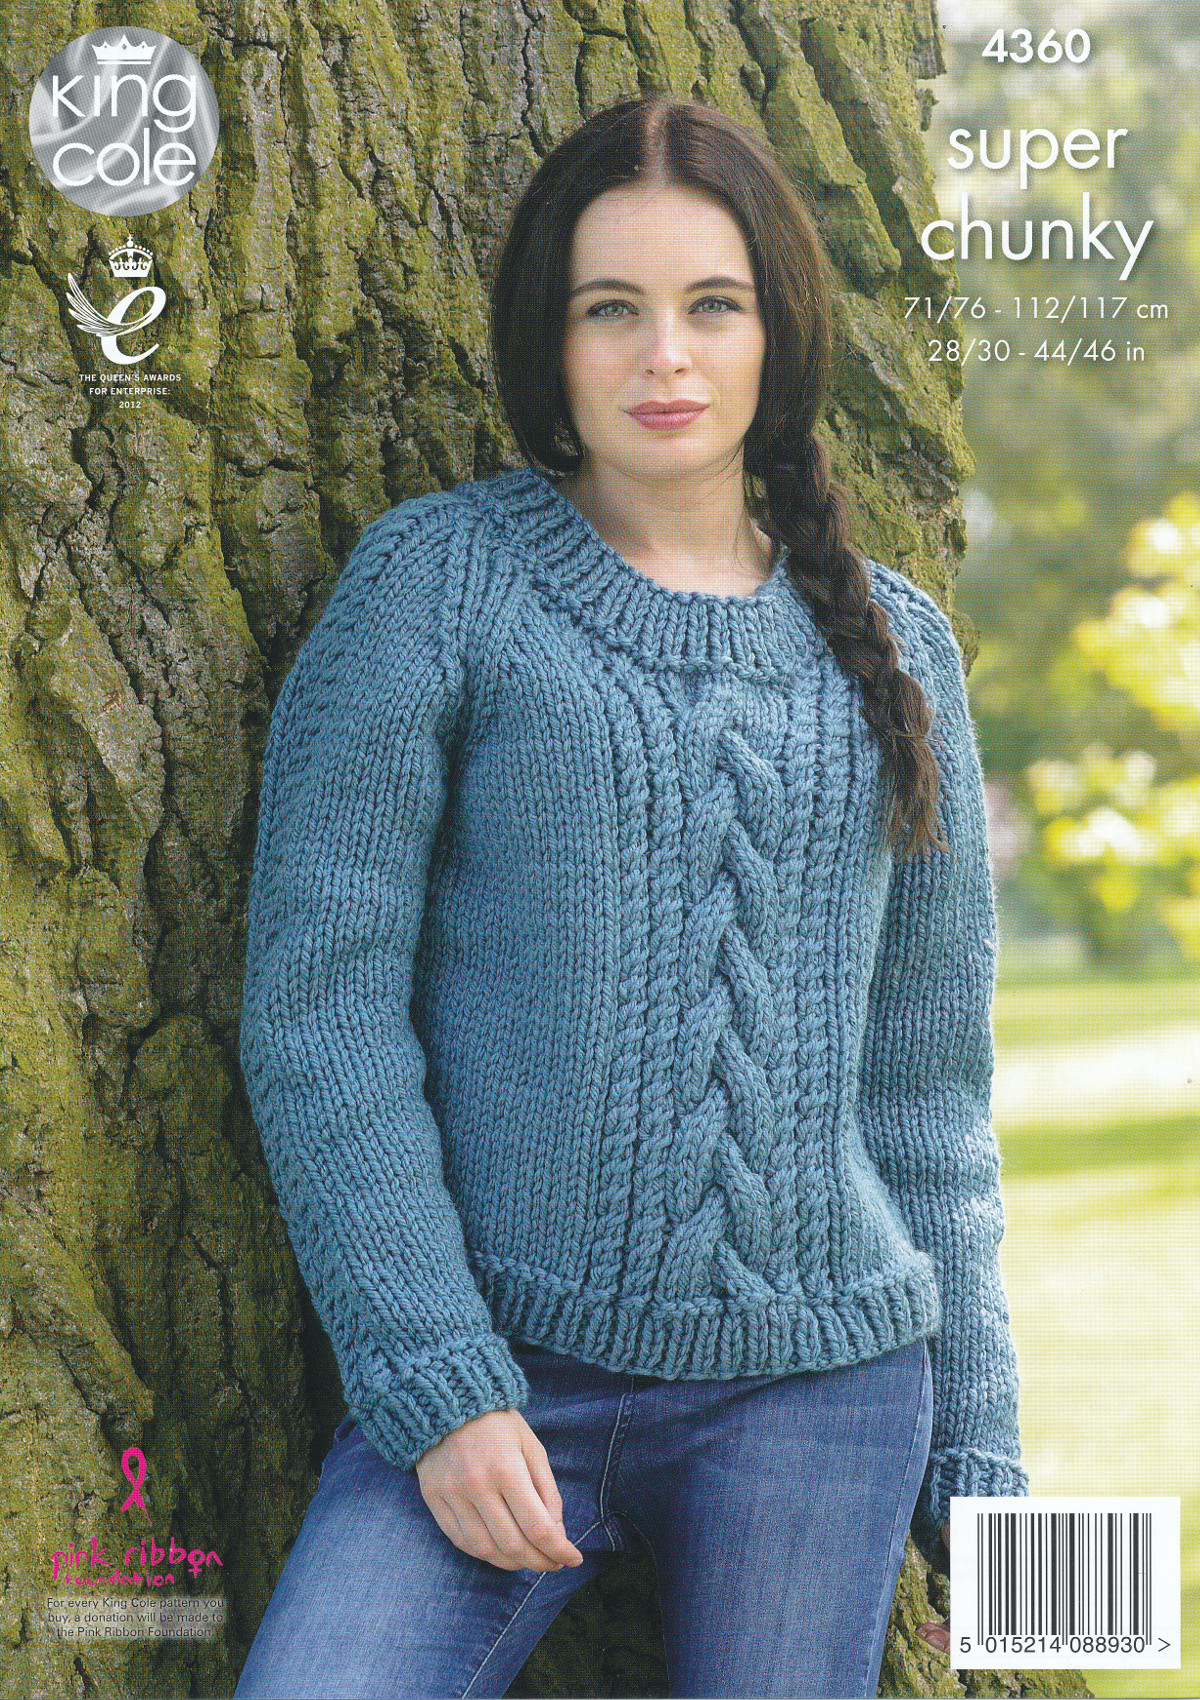 Knitting In The Round Sweater Patterns : Ladies super chunky knitting pattern king cole cable knit